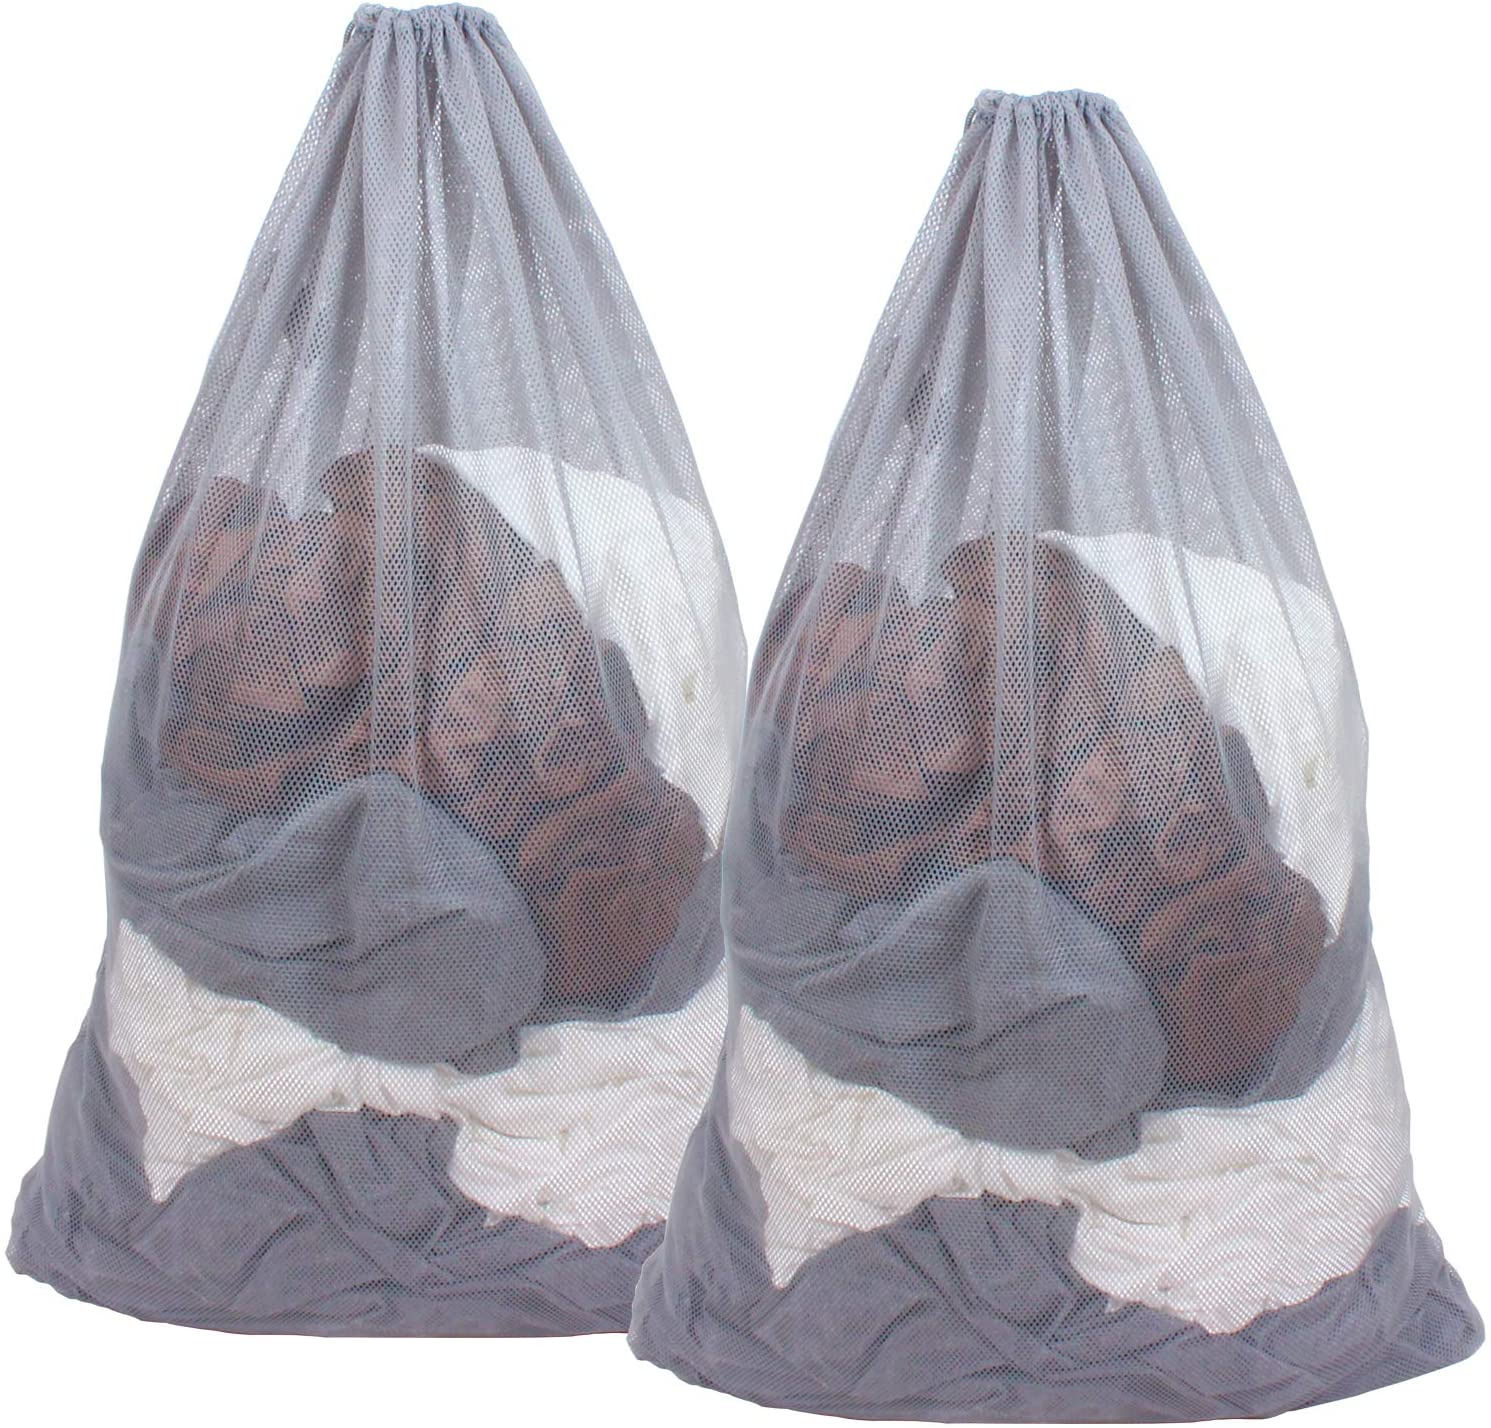 DuomiW Mesh Laundry Bag Heavy Duty Drawstring Bag, Factories, College, Dorm, Travel and Apartment Dwellers, 24 x 36 Inches 2 Pack, Grey